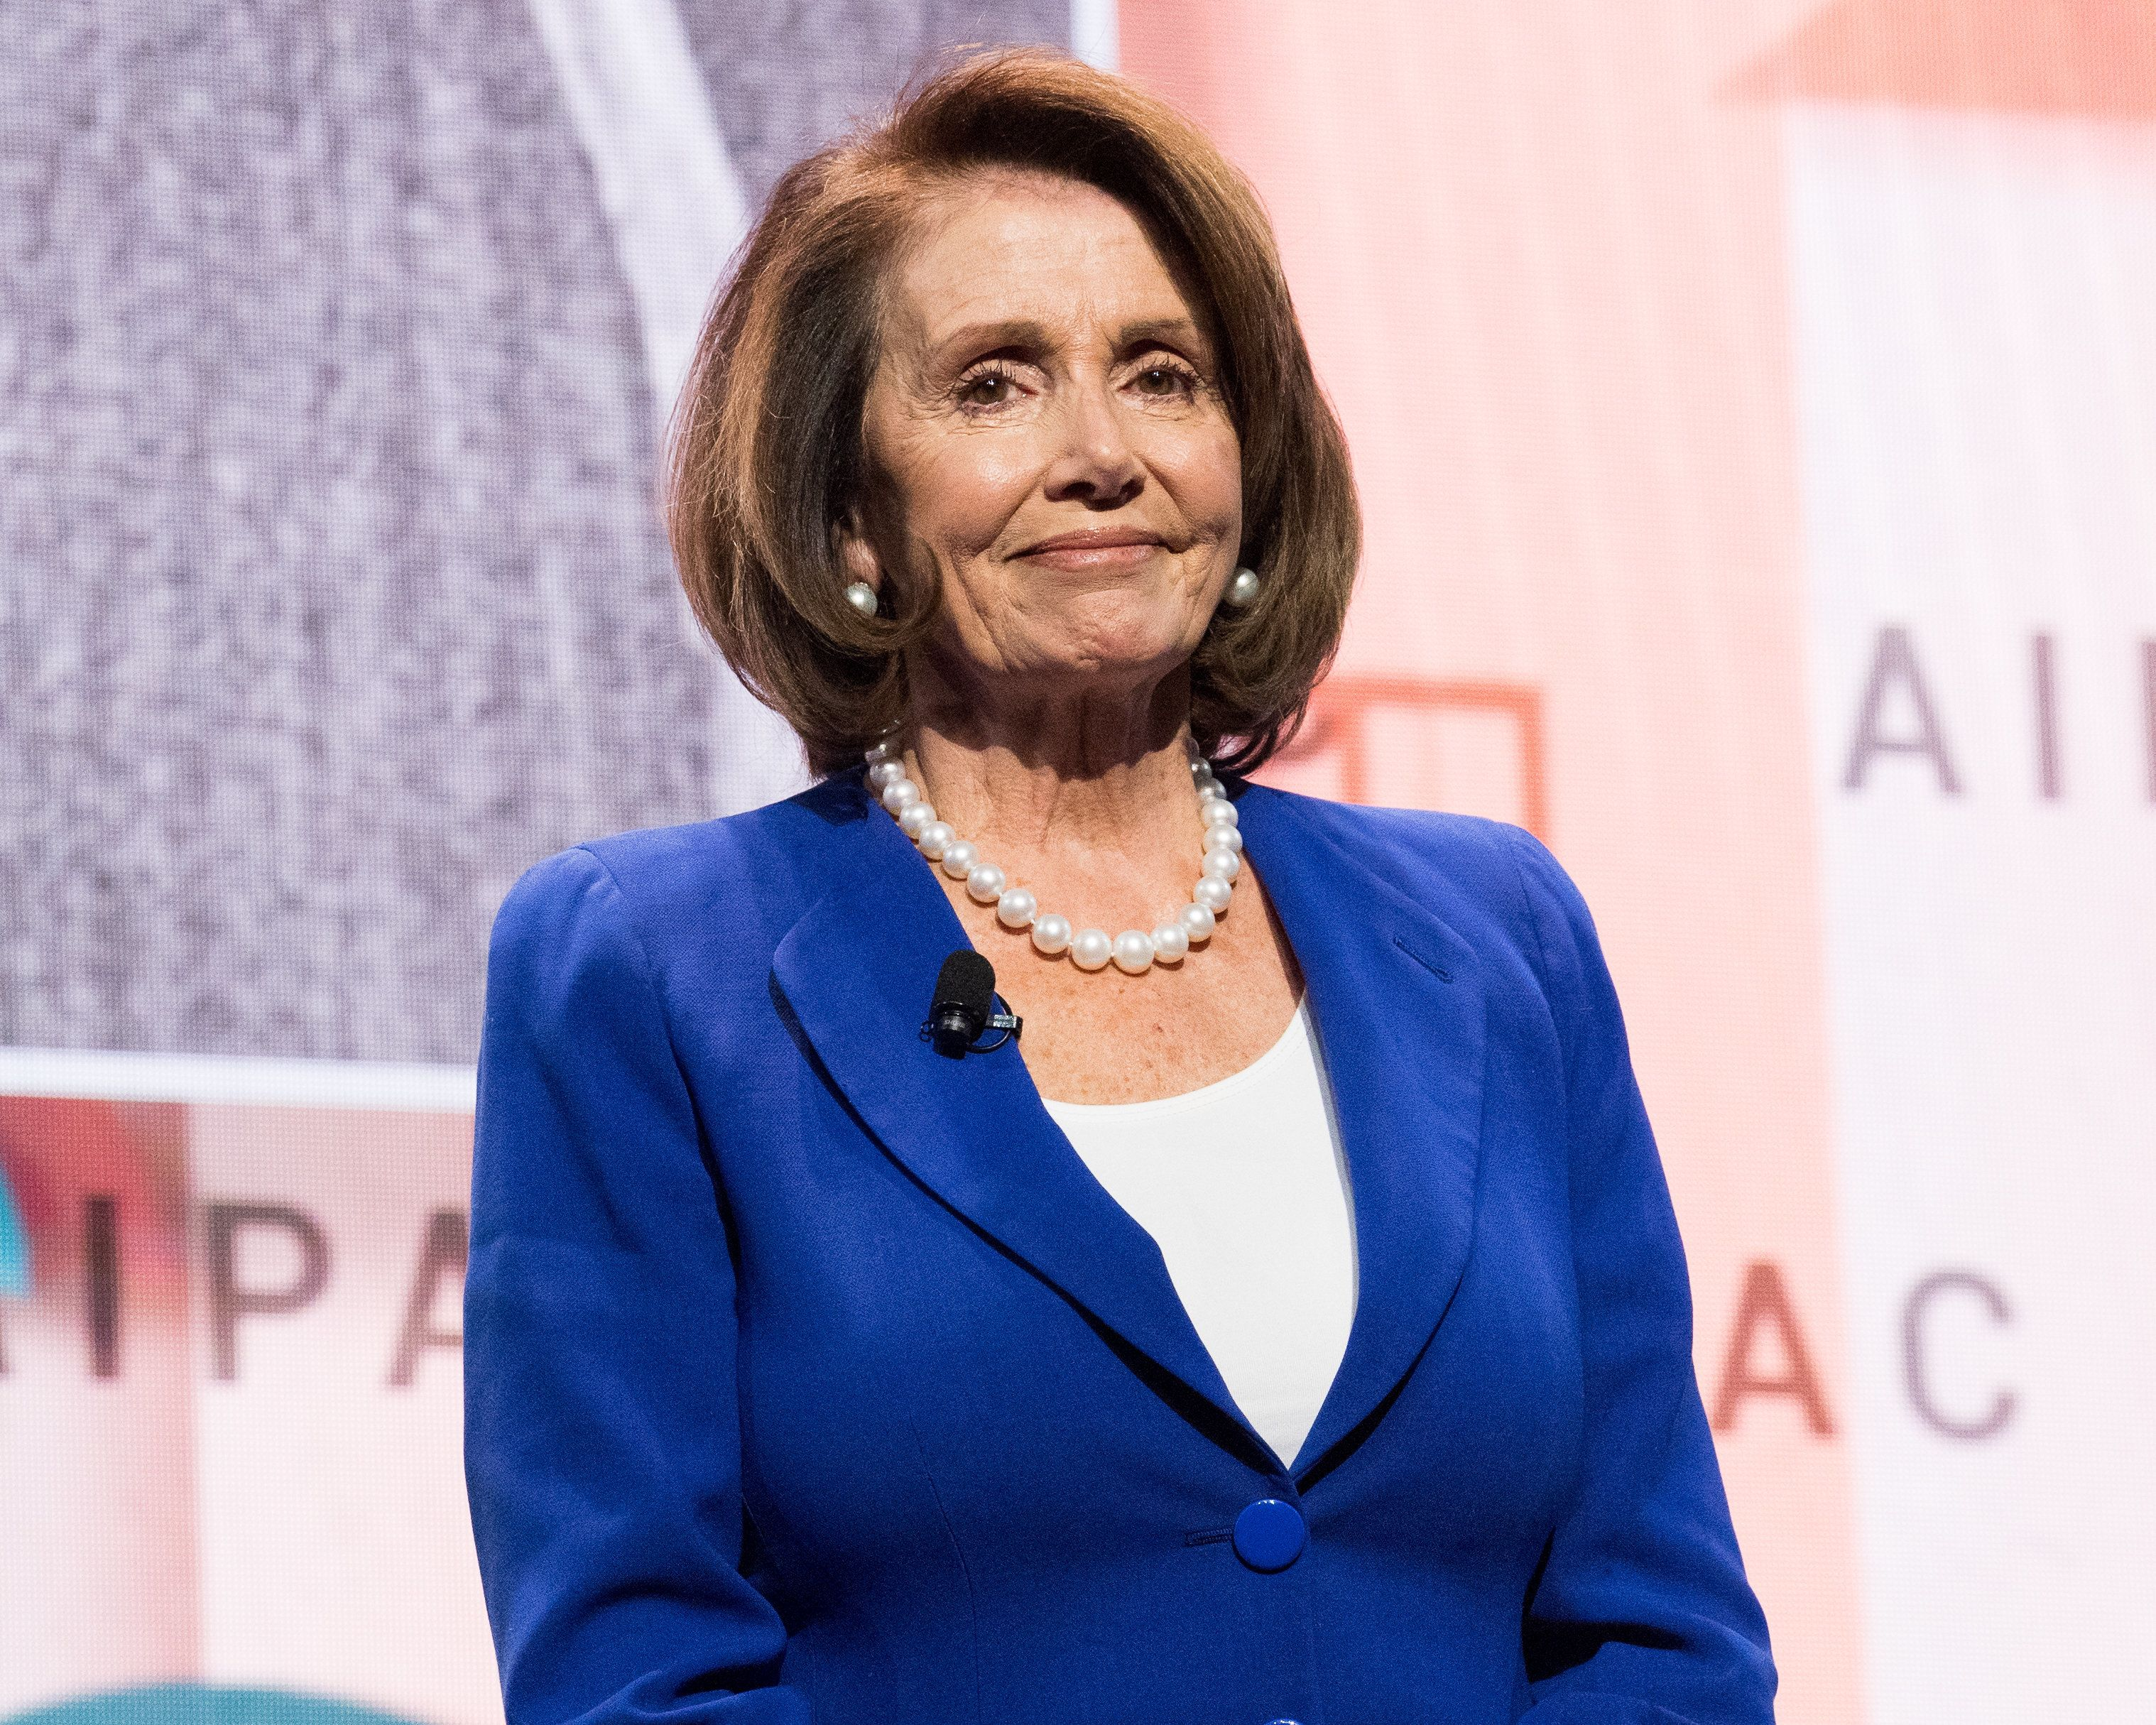 WASHINGTON, DC, UNITED STATES - 2018/03/05: Nancy Pelosi, Minority Leader (D) of the United States House of Representatives, speaking at the AIPAC (American Israel Public Affairs Committee) Policy Conference at the Walter E. Washington Convention Center. (Photo by Michael Brochstein/SOPA Images/LightRocket via Getty Images)